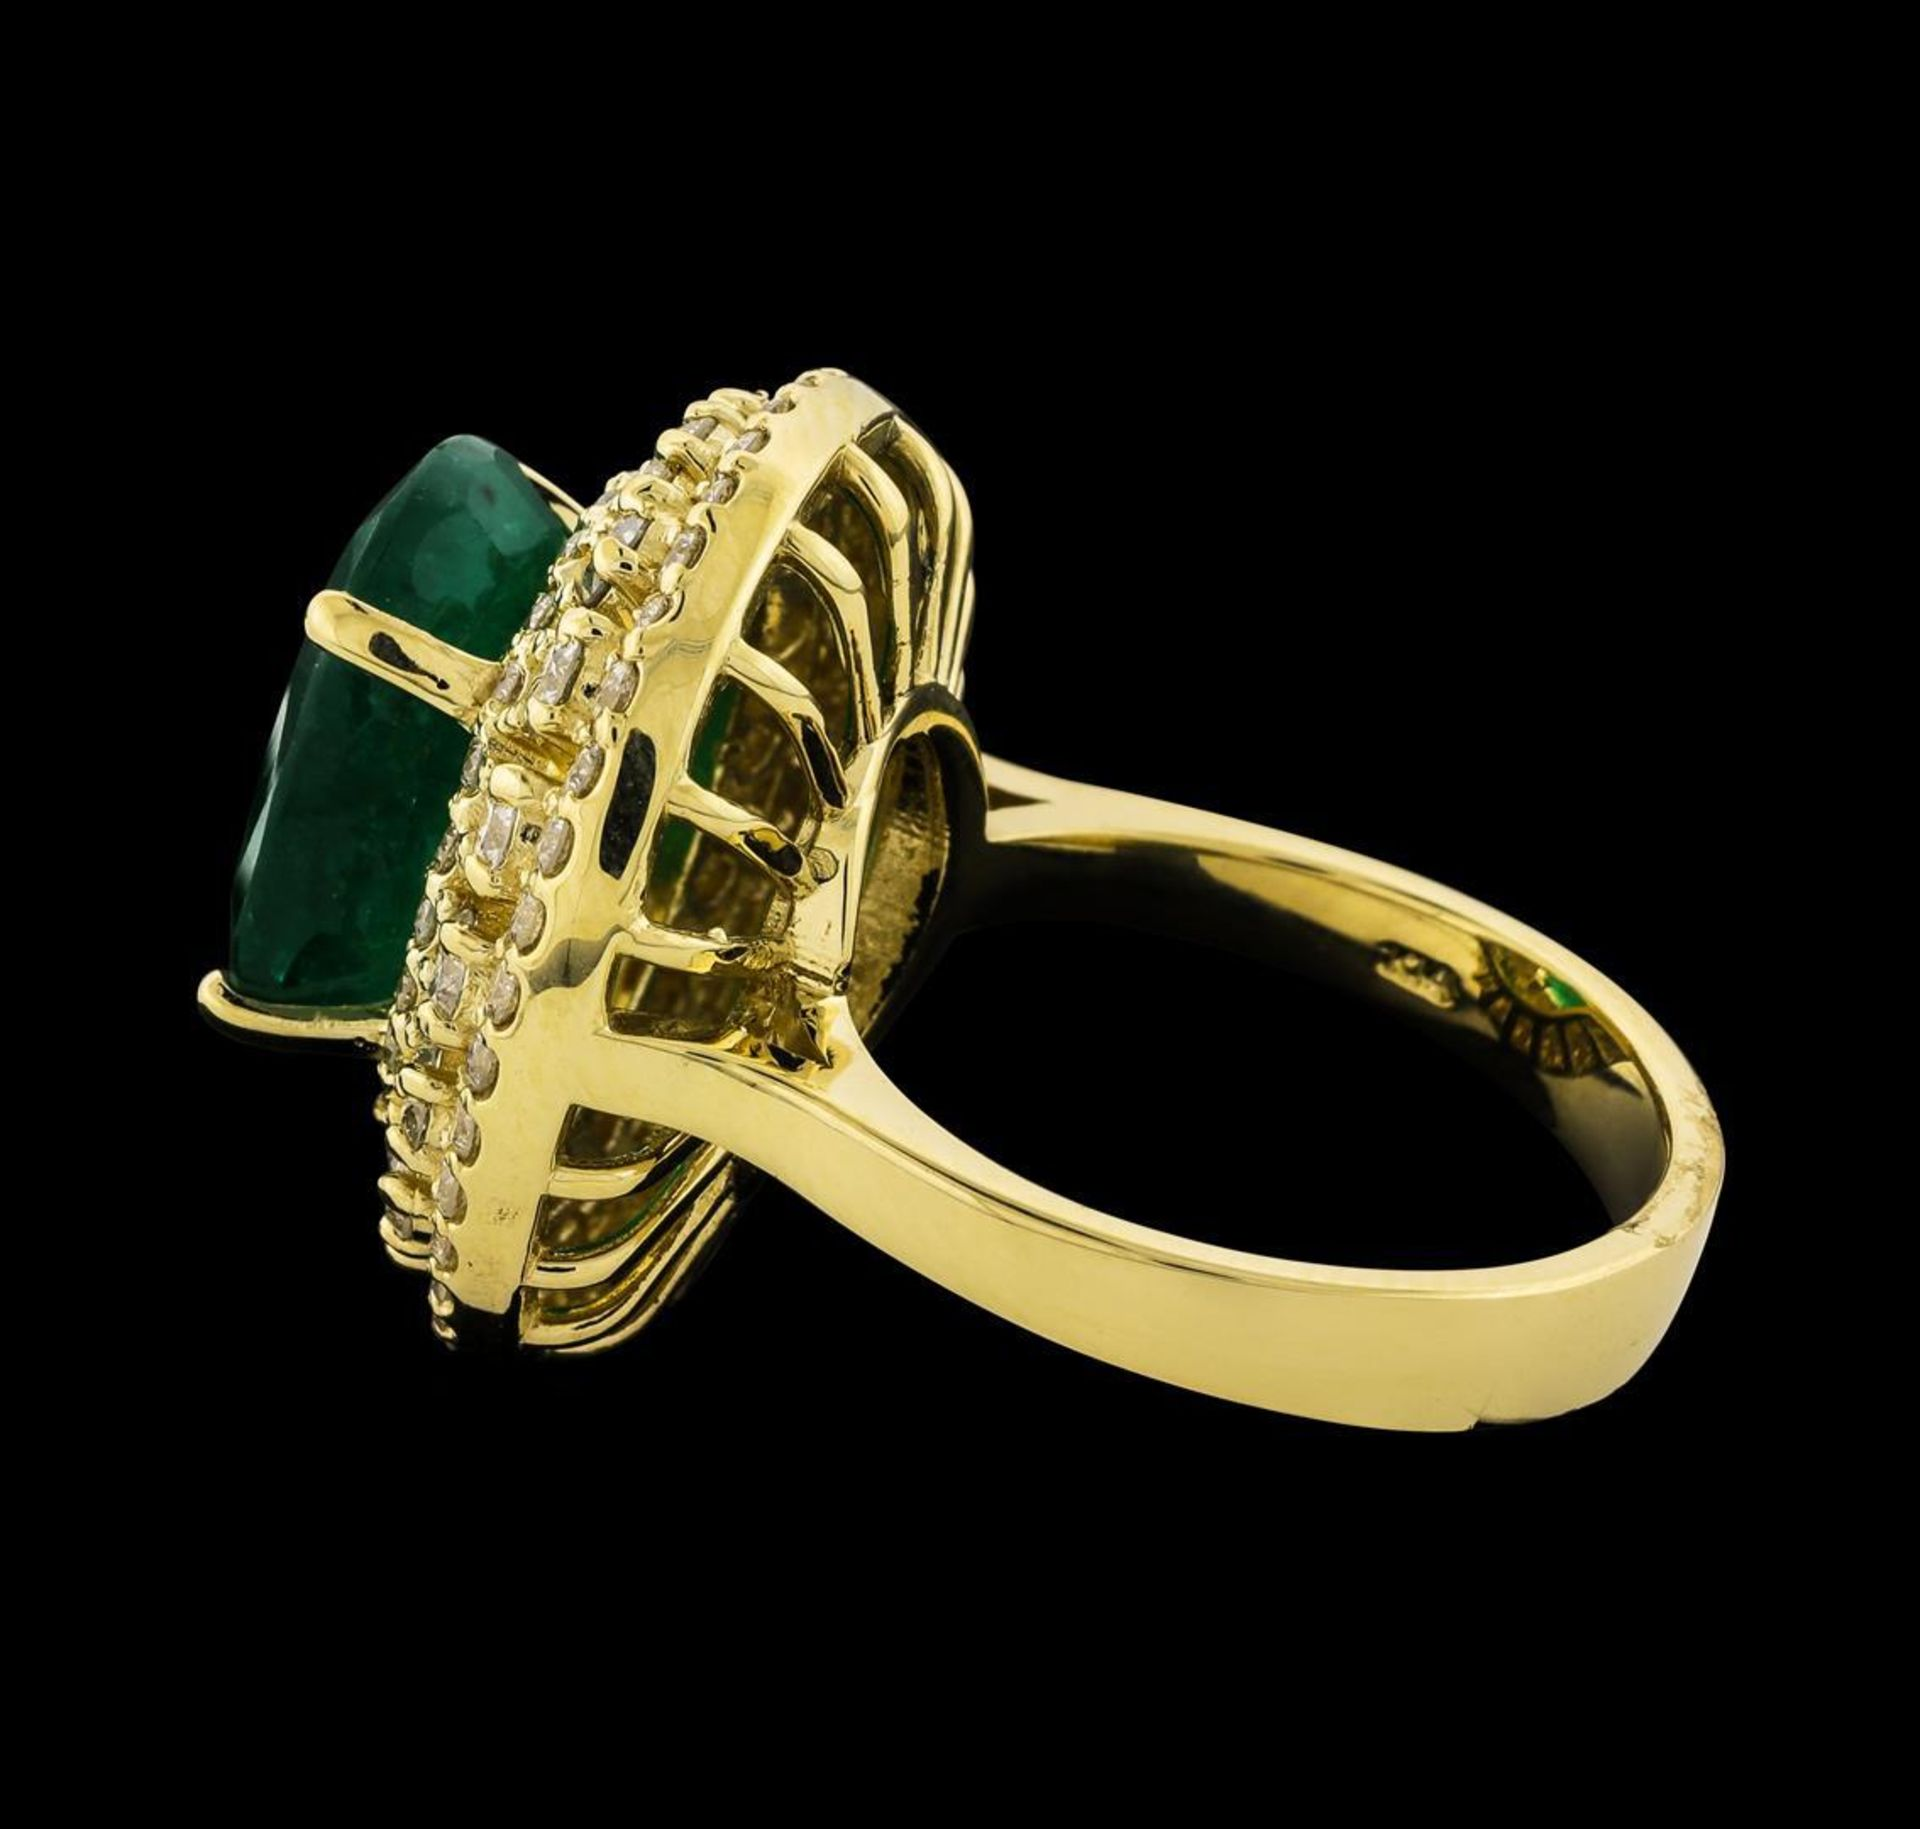 6.63 ctw Emerald and Diamond Ring - 14KT Yellow Gold - Image 3 of 5